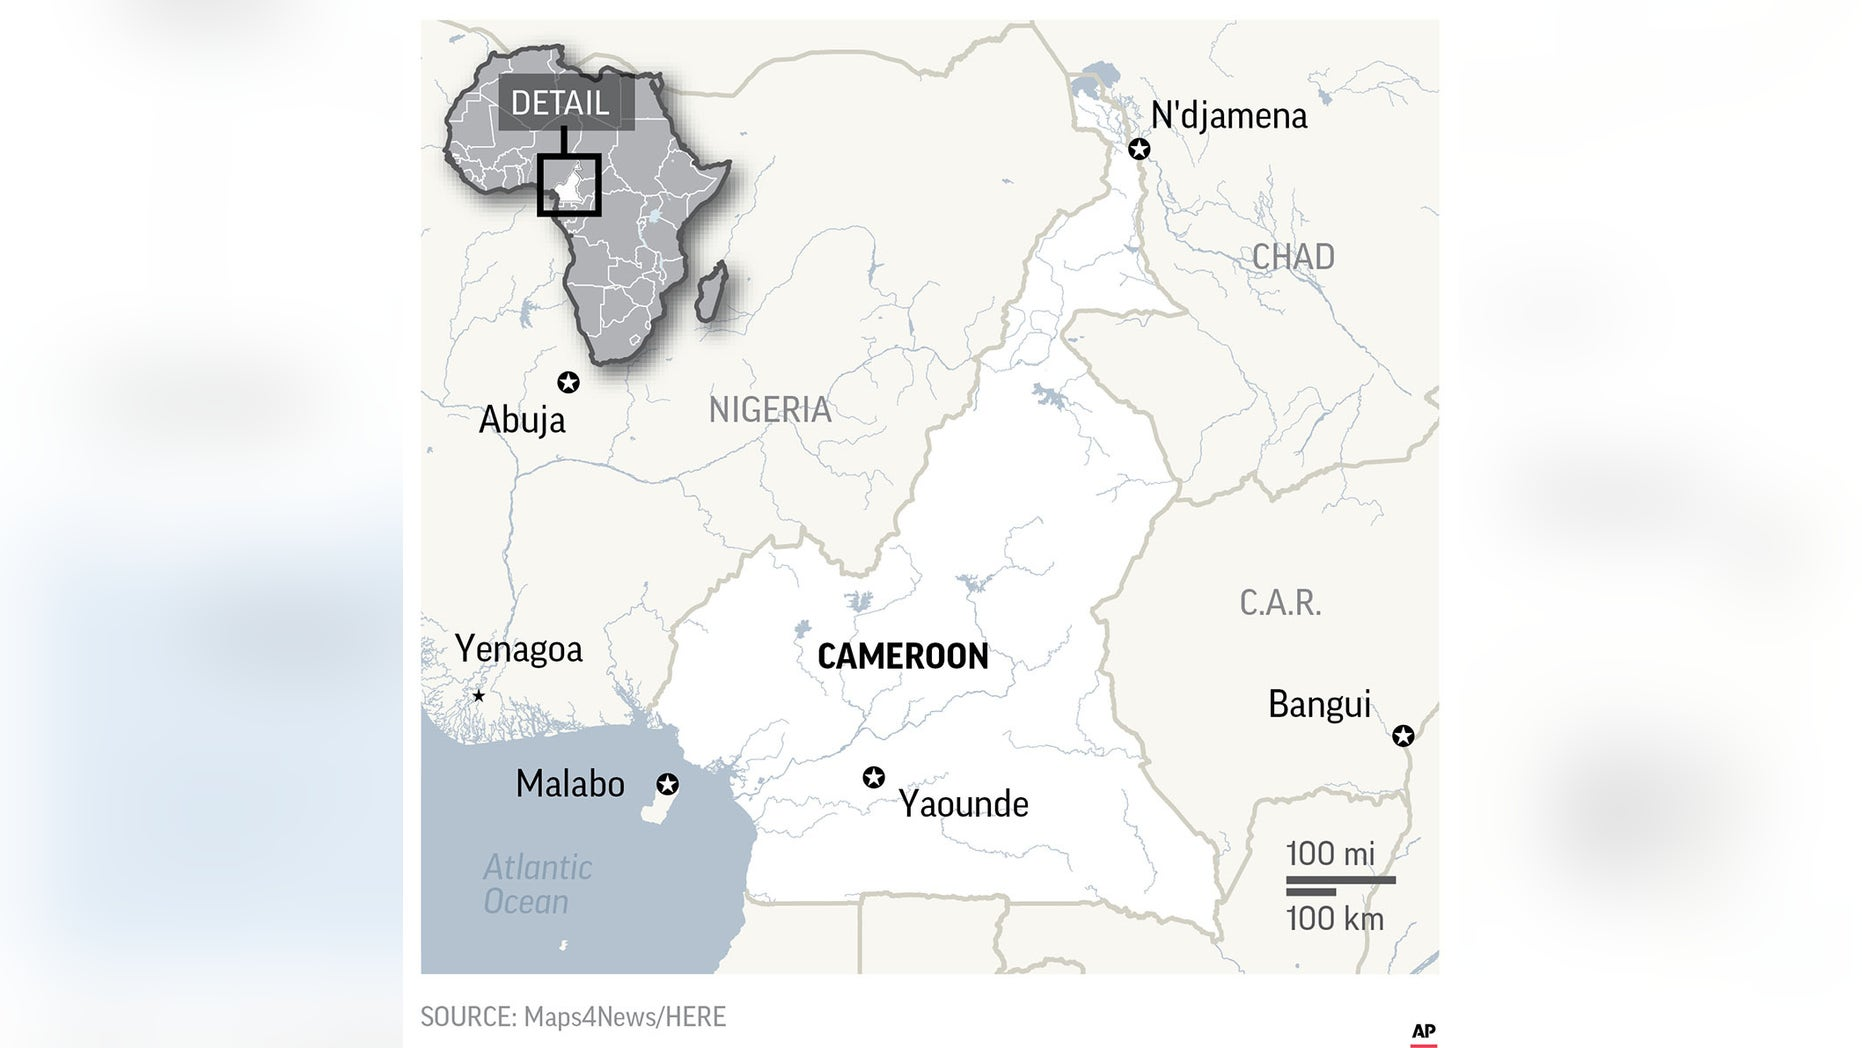 Cameroon lurches toward election amid separatist conflict | Fox News